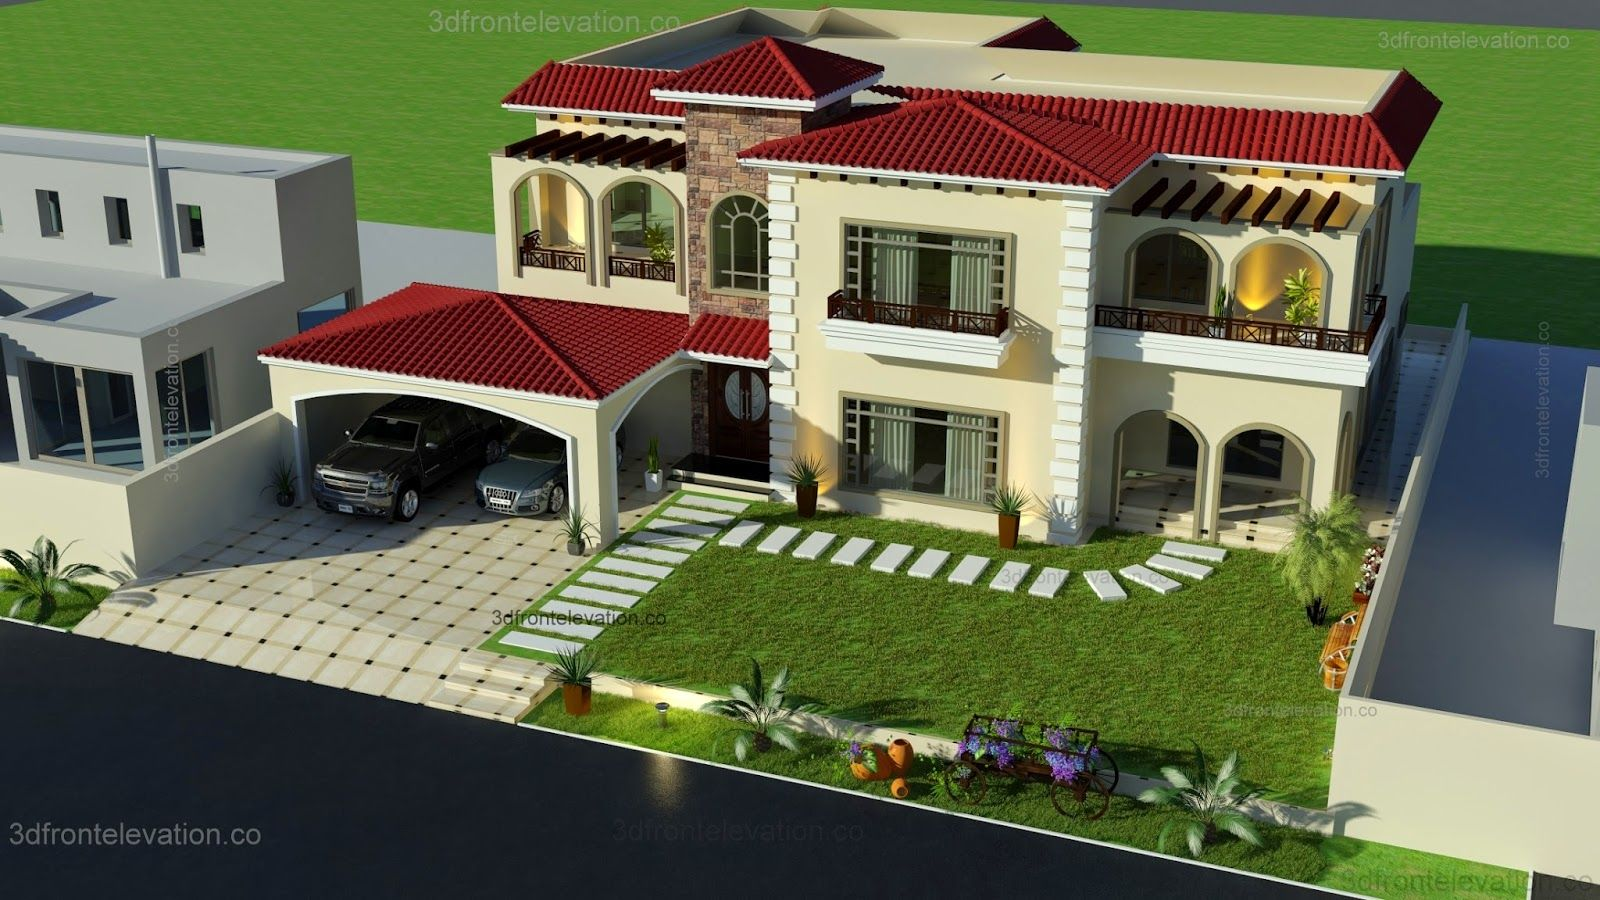 1000 Square Yards House Designing Layout Plan Mediterranean House Designs Mediterranean Homes Architectural Design House Plans